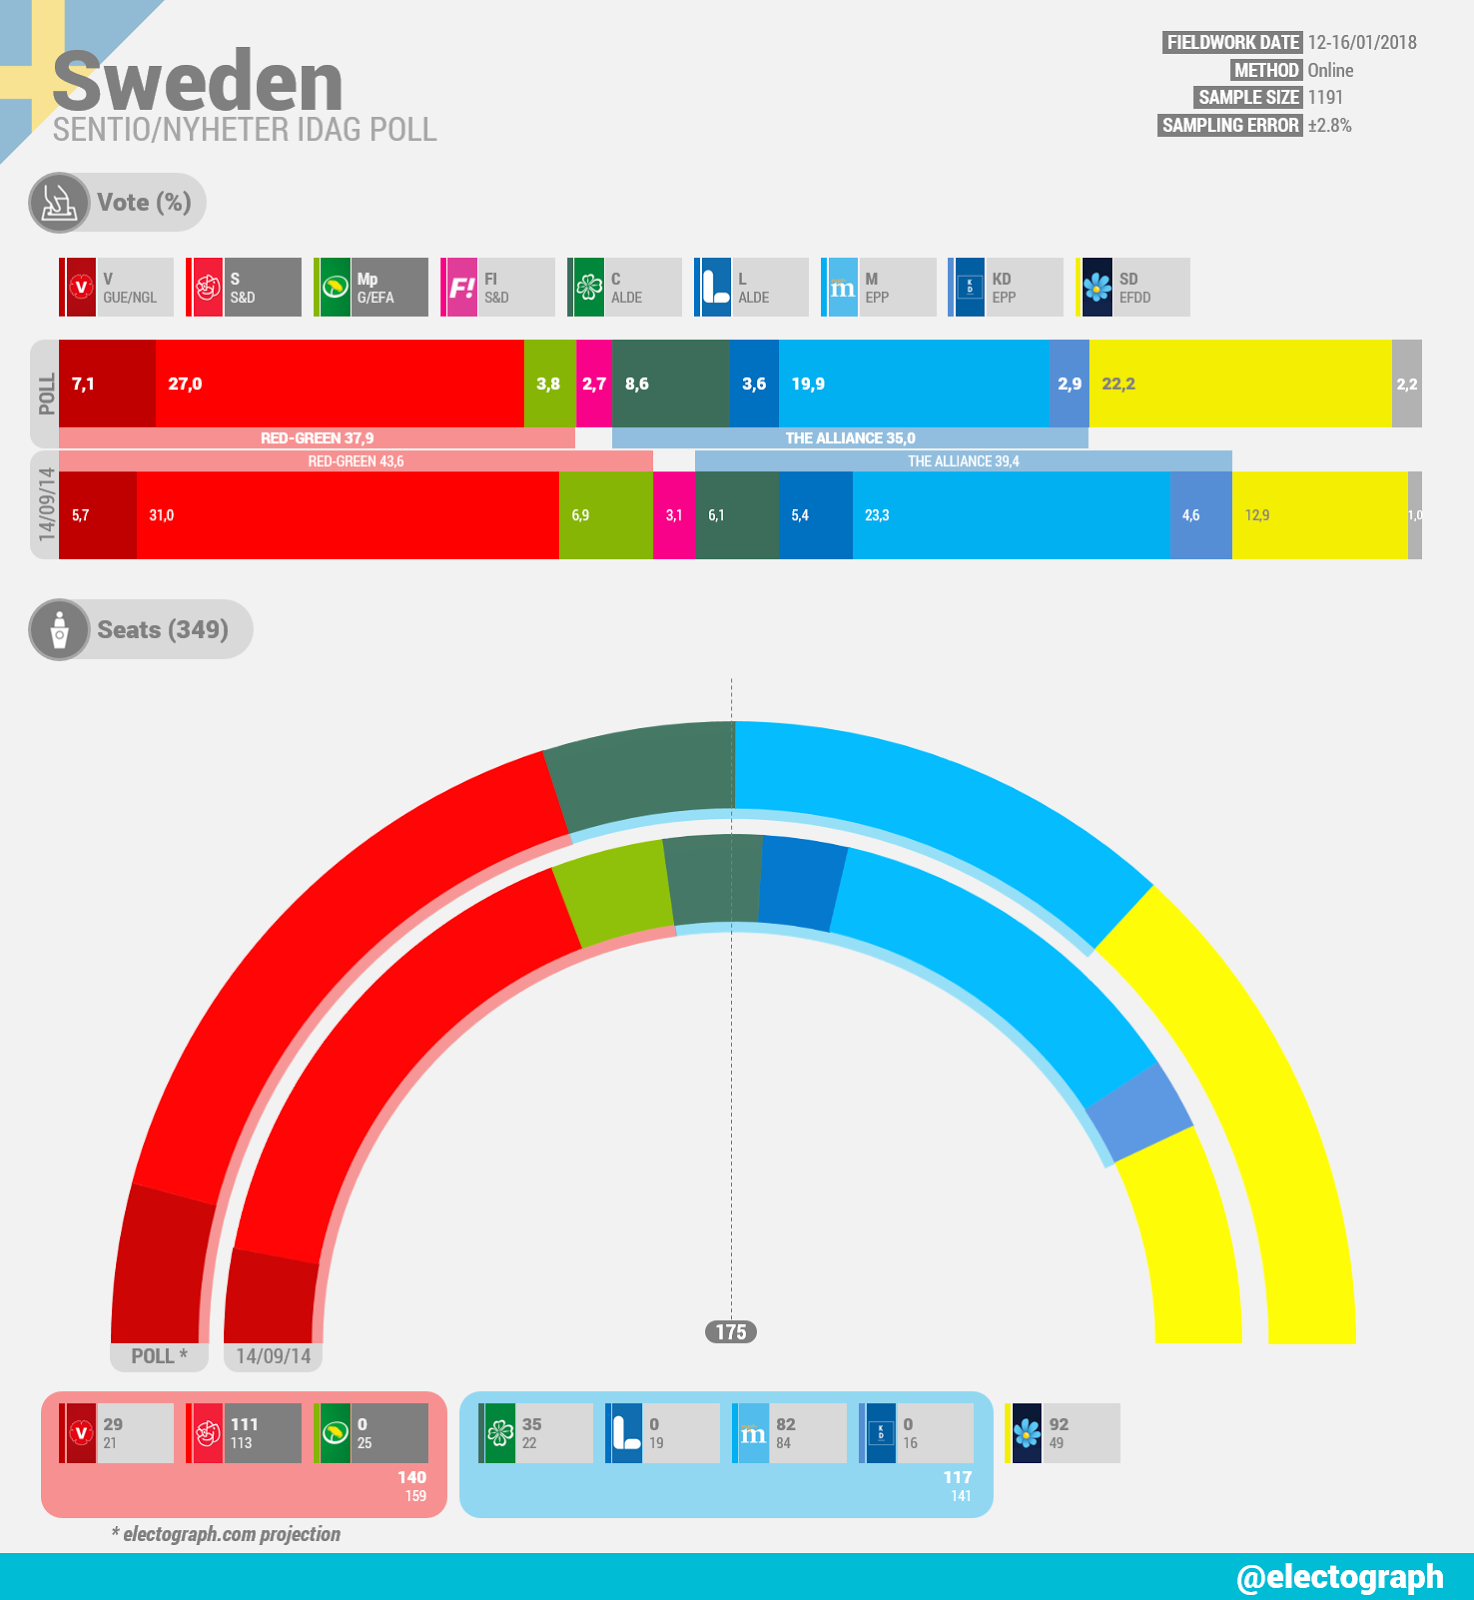 SWEDEN Sentio poll chart January 2018